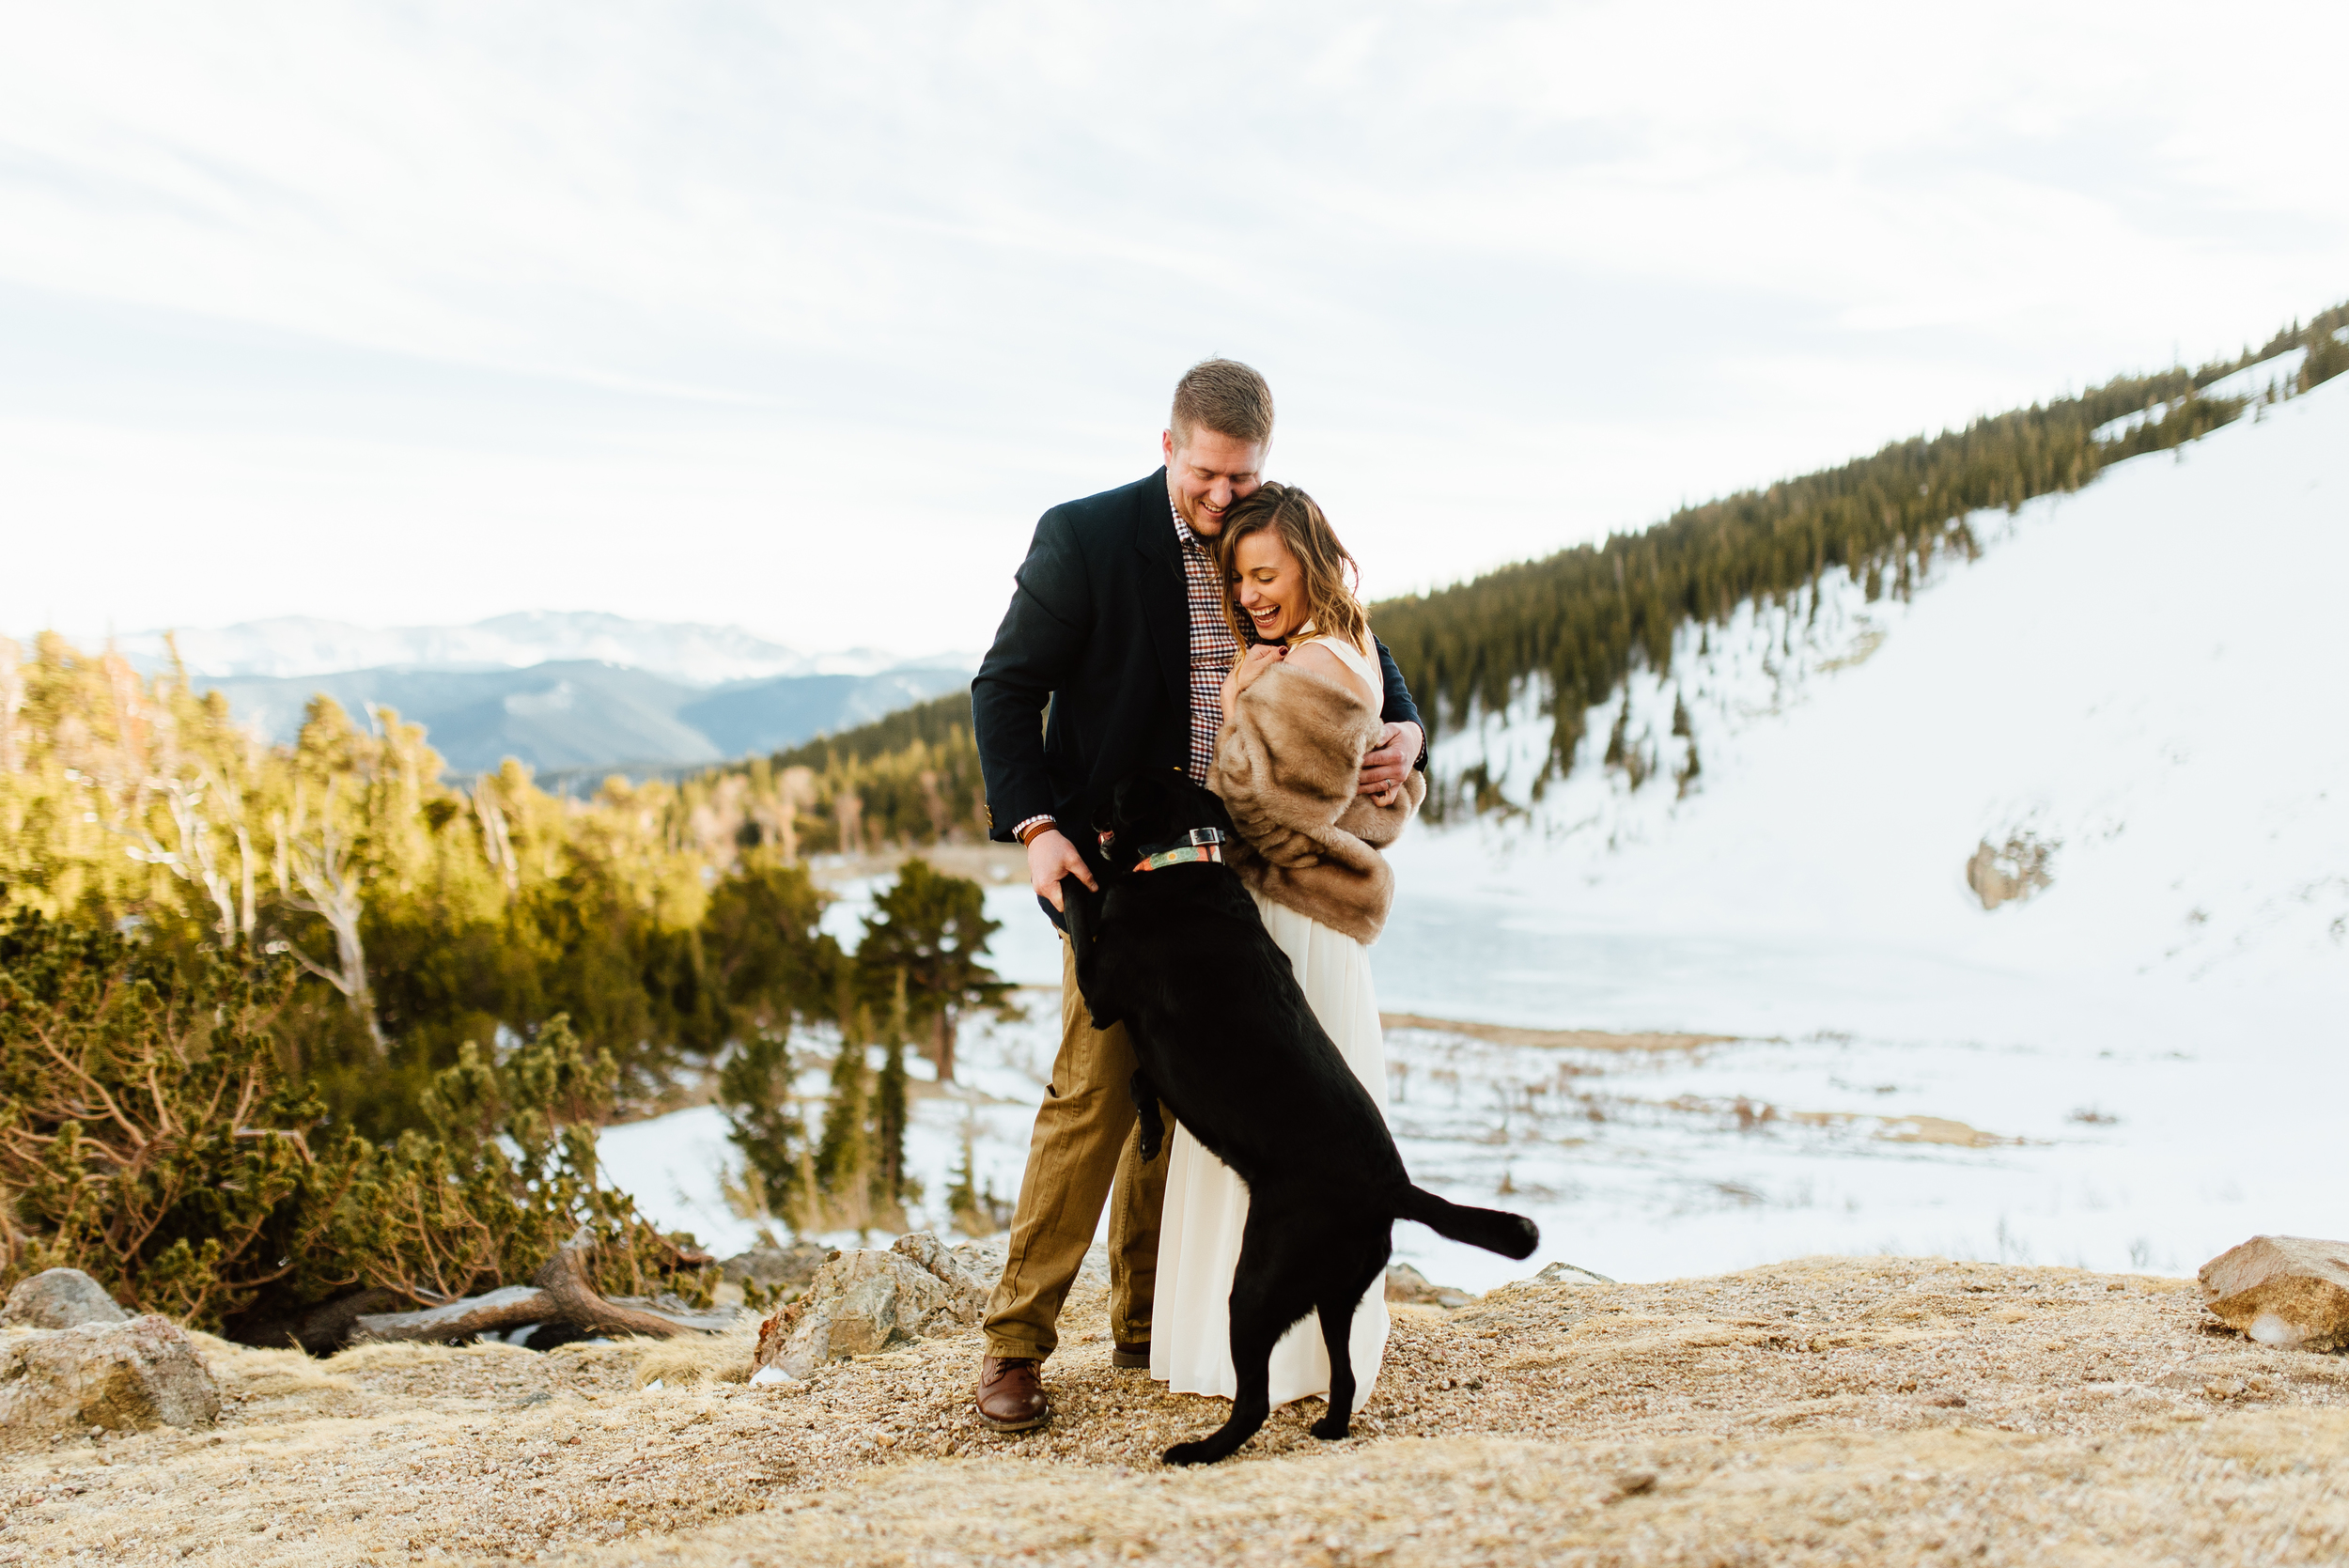 Even their dog is celebrating their new marriage. I love that Kelsie and Tyler eloped in the Rocky Mountains!| Mountain wedding photos by intimate, outdoor elopement photographer, Maddie Mae.